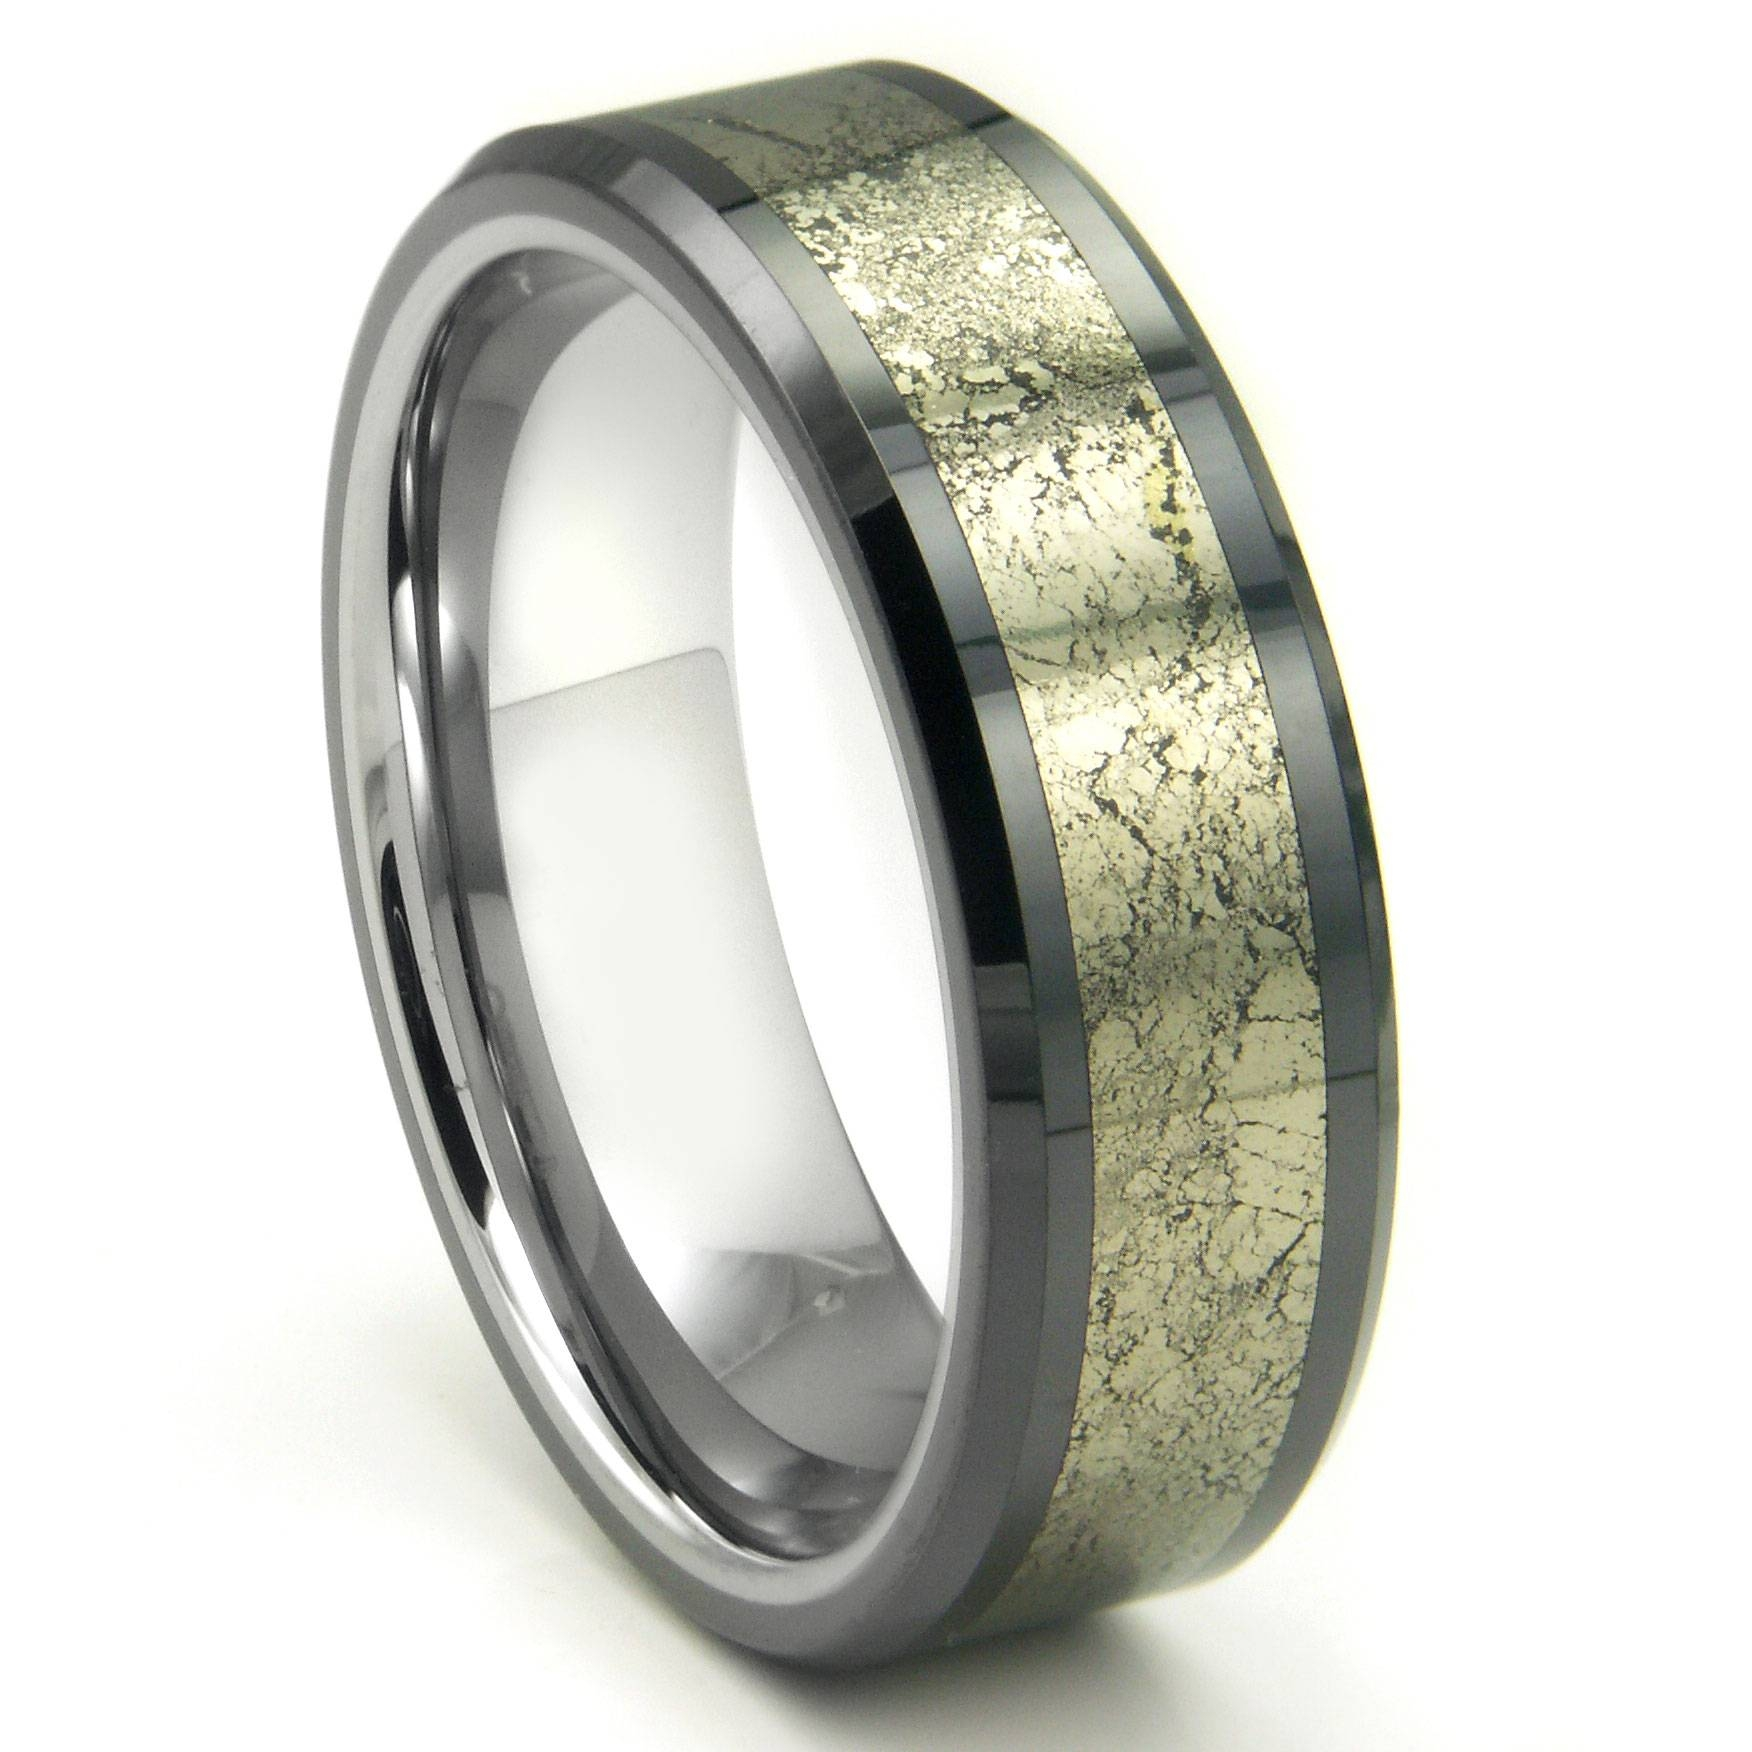 Mens Tungsten Rings & Wedding Bands – Titanium Kay Inside Durable Men's Wedding Bands (View 14 of 15)